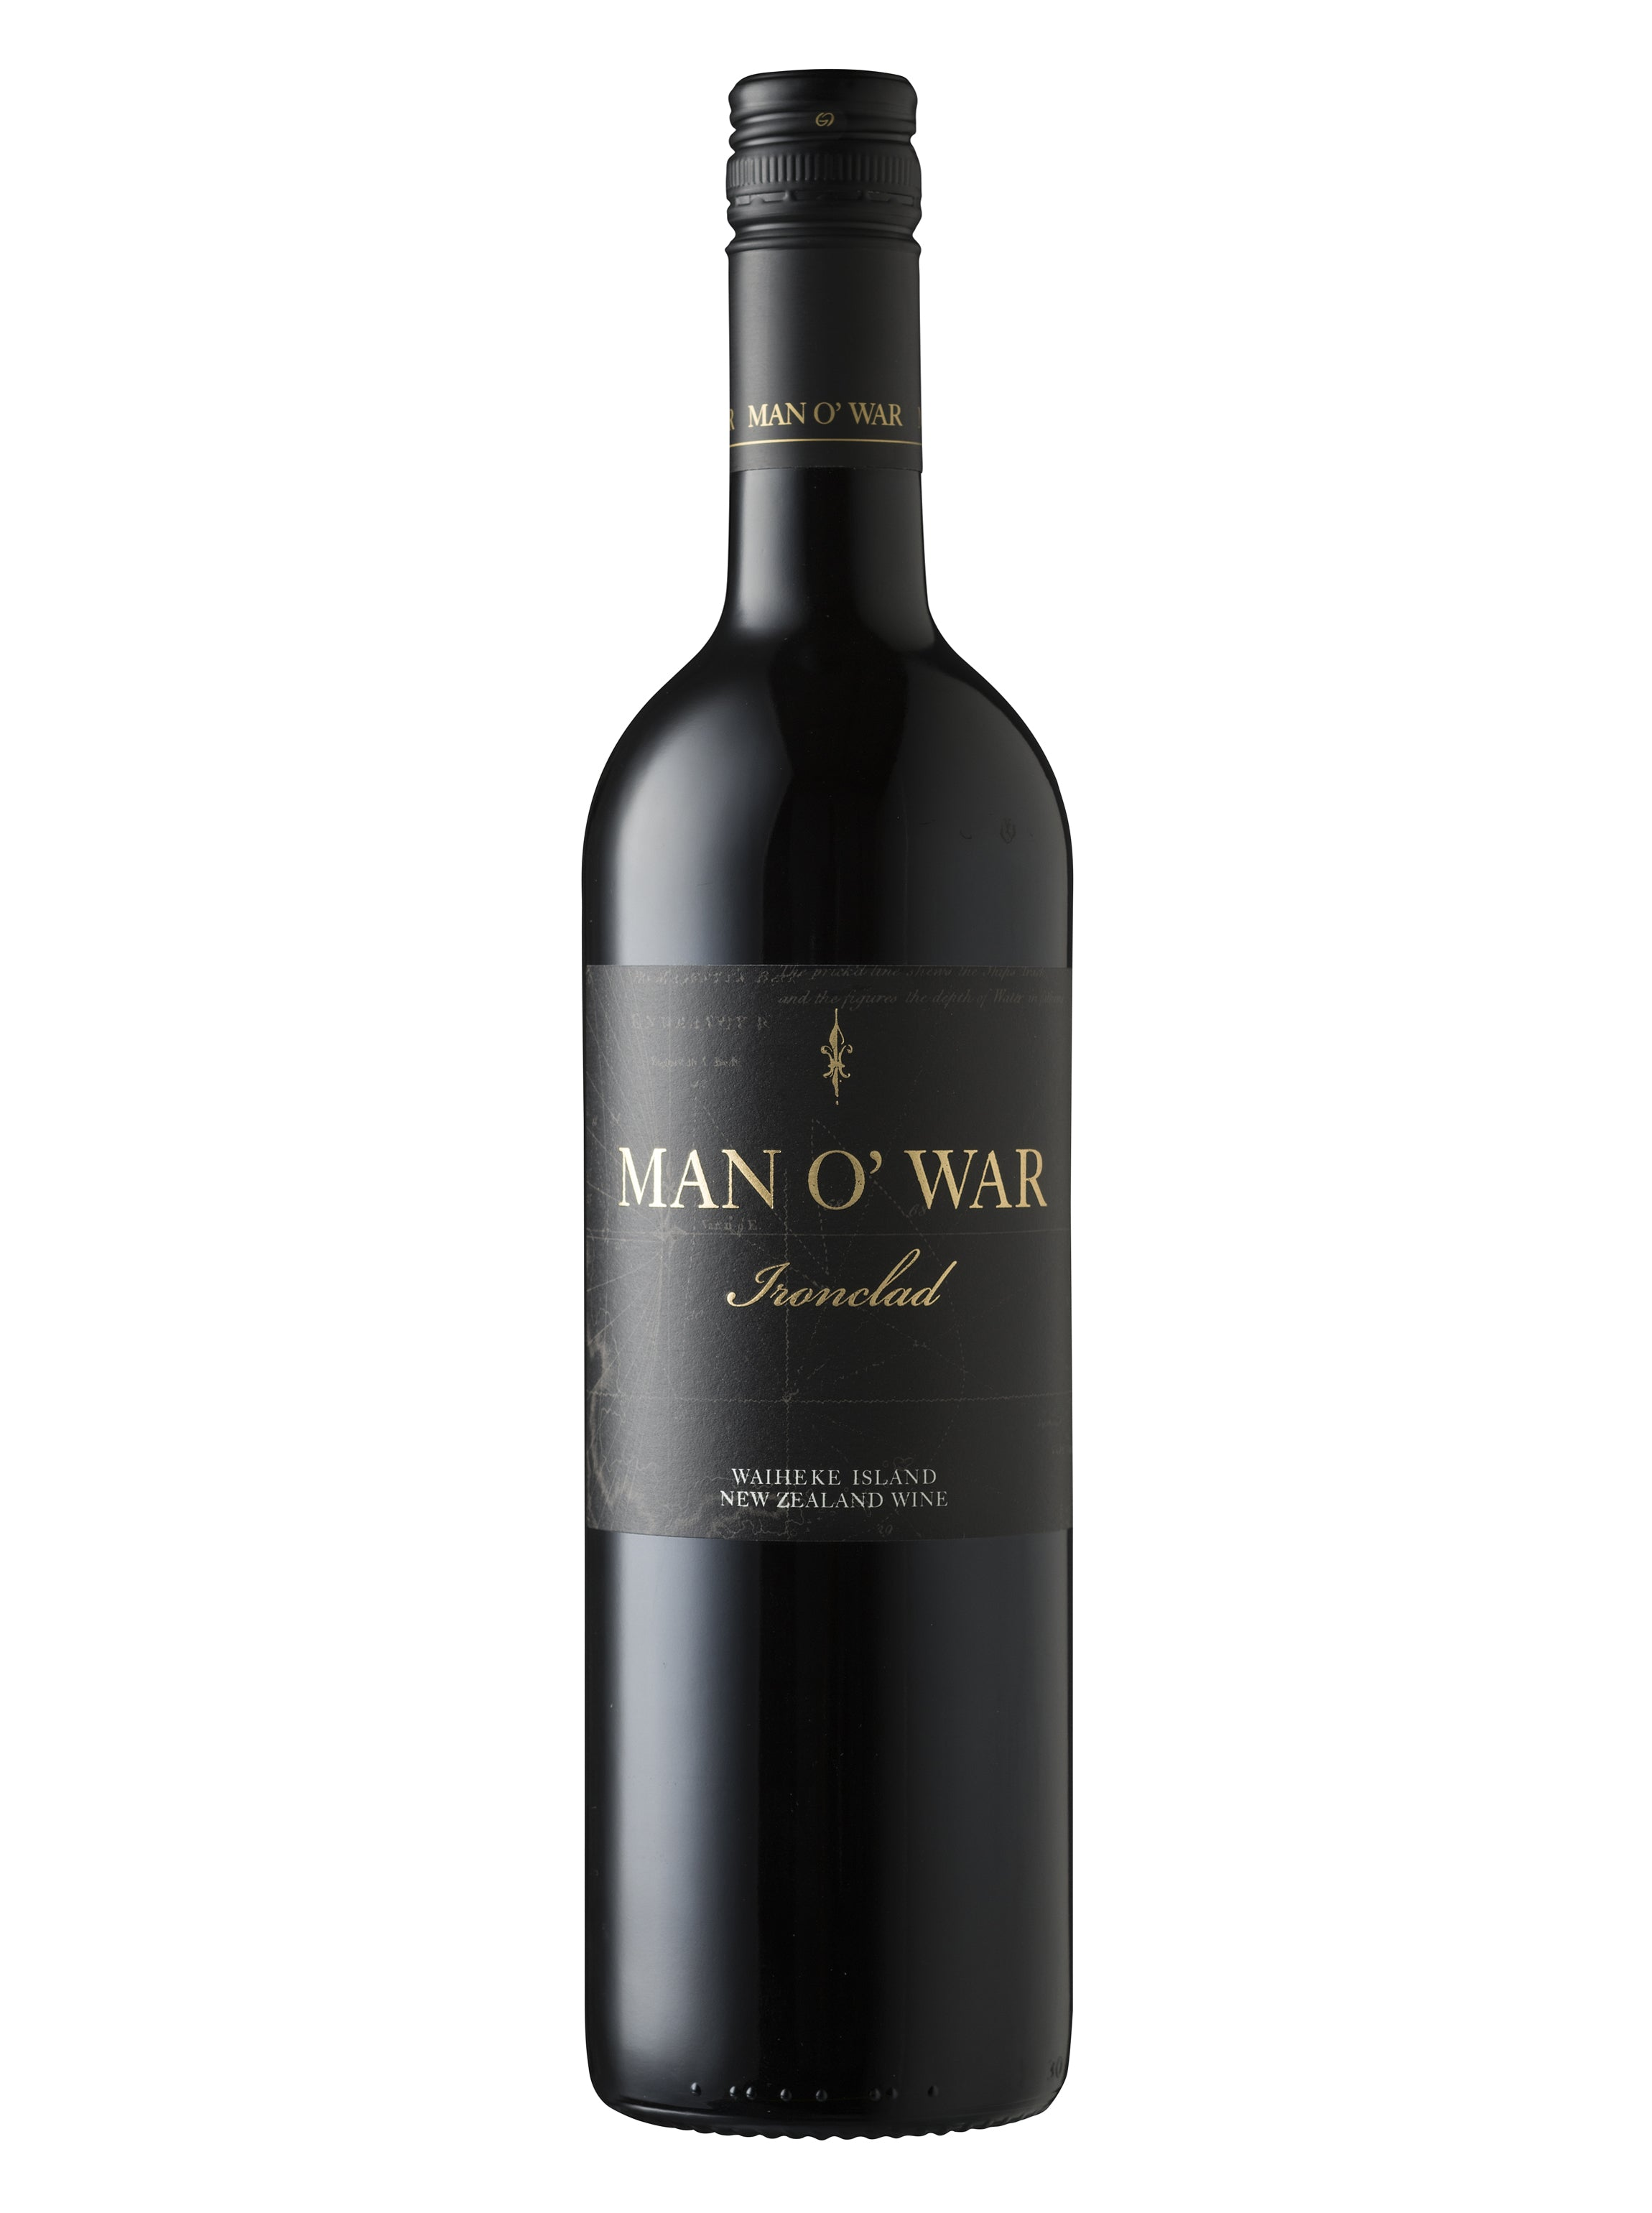 Man O' War Ironclad Bordeaux Blend 2017